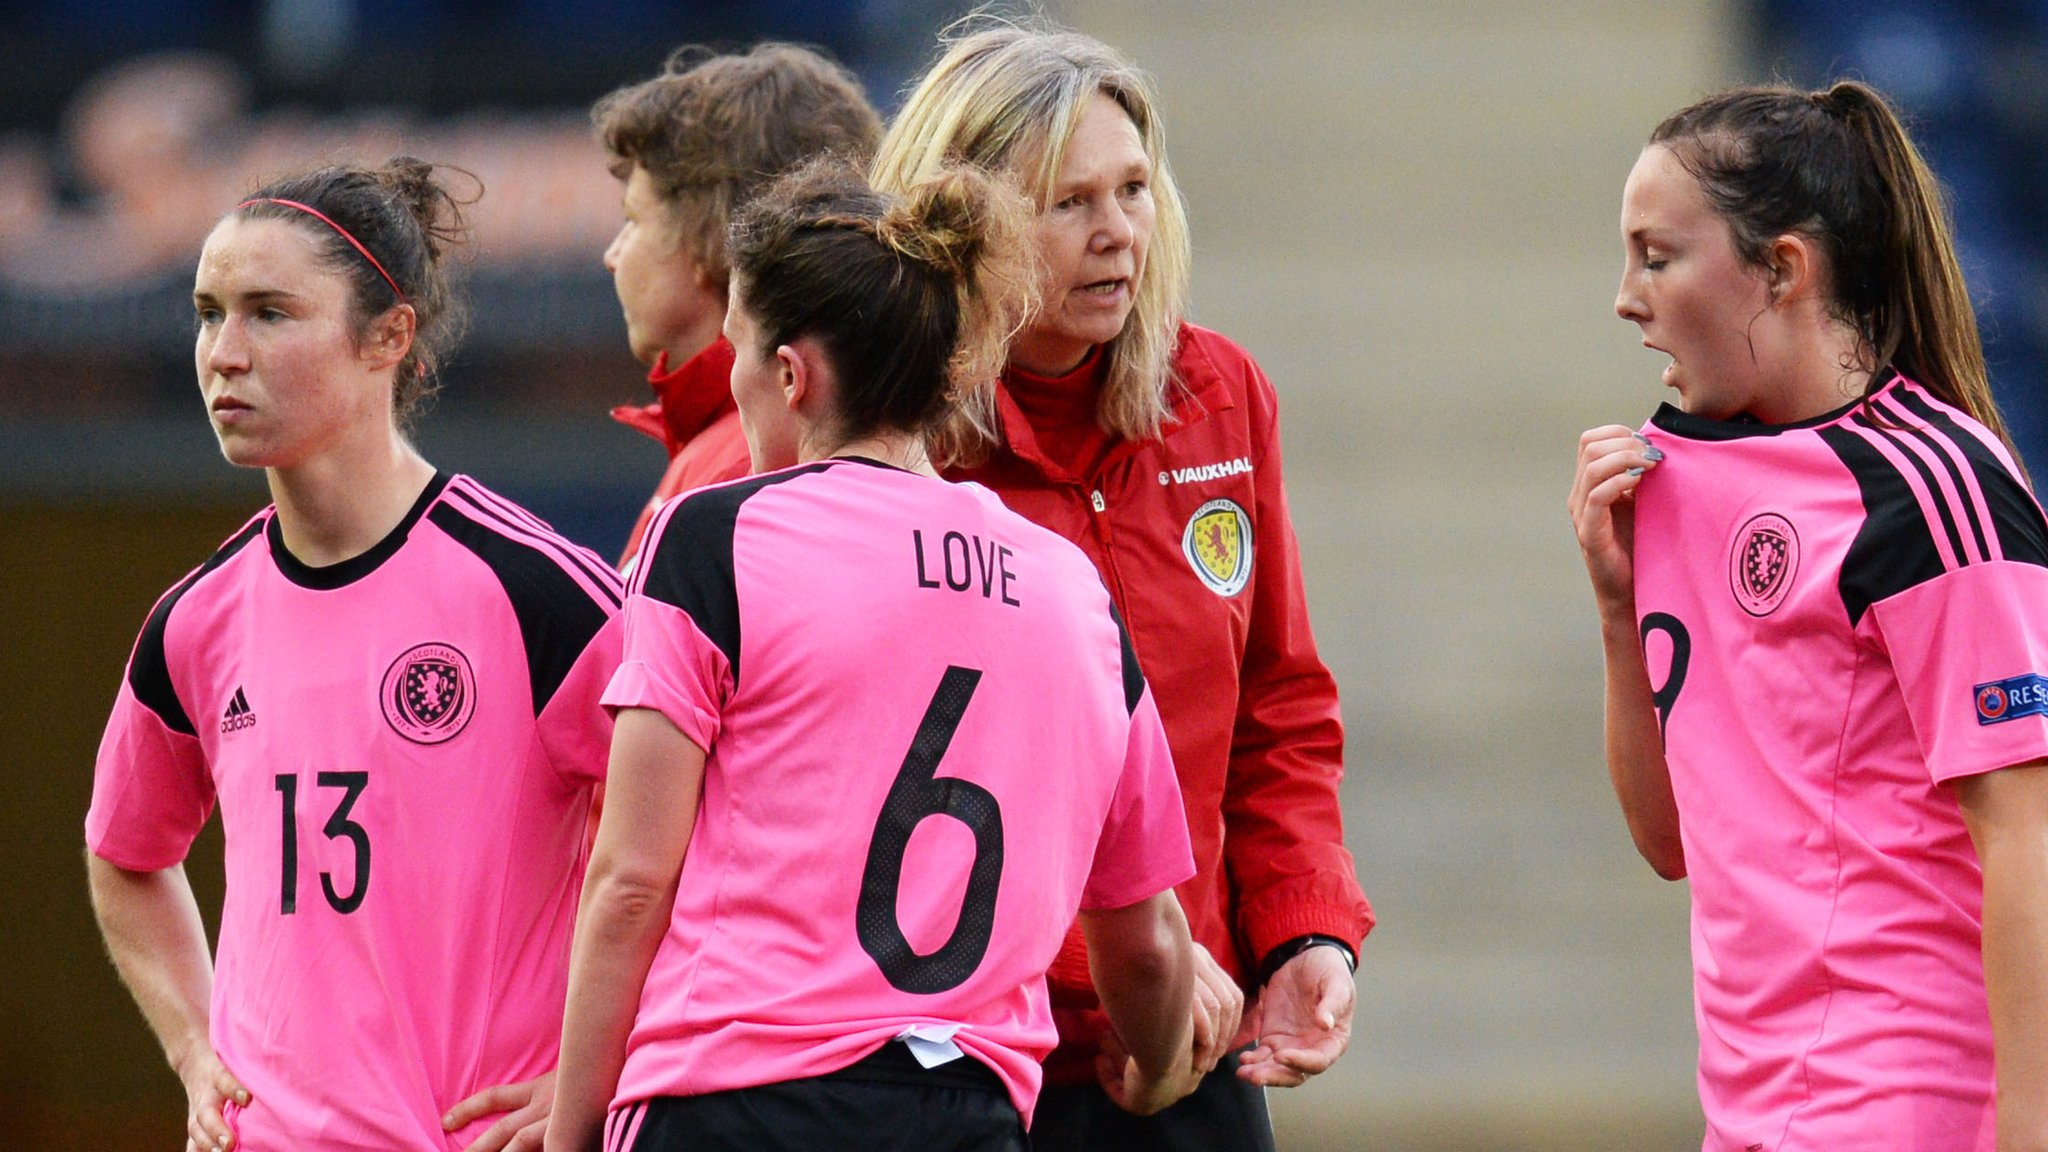 Scottish FA and Scotland Women's national team resolve dispute